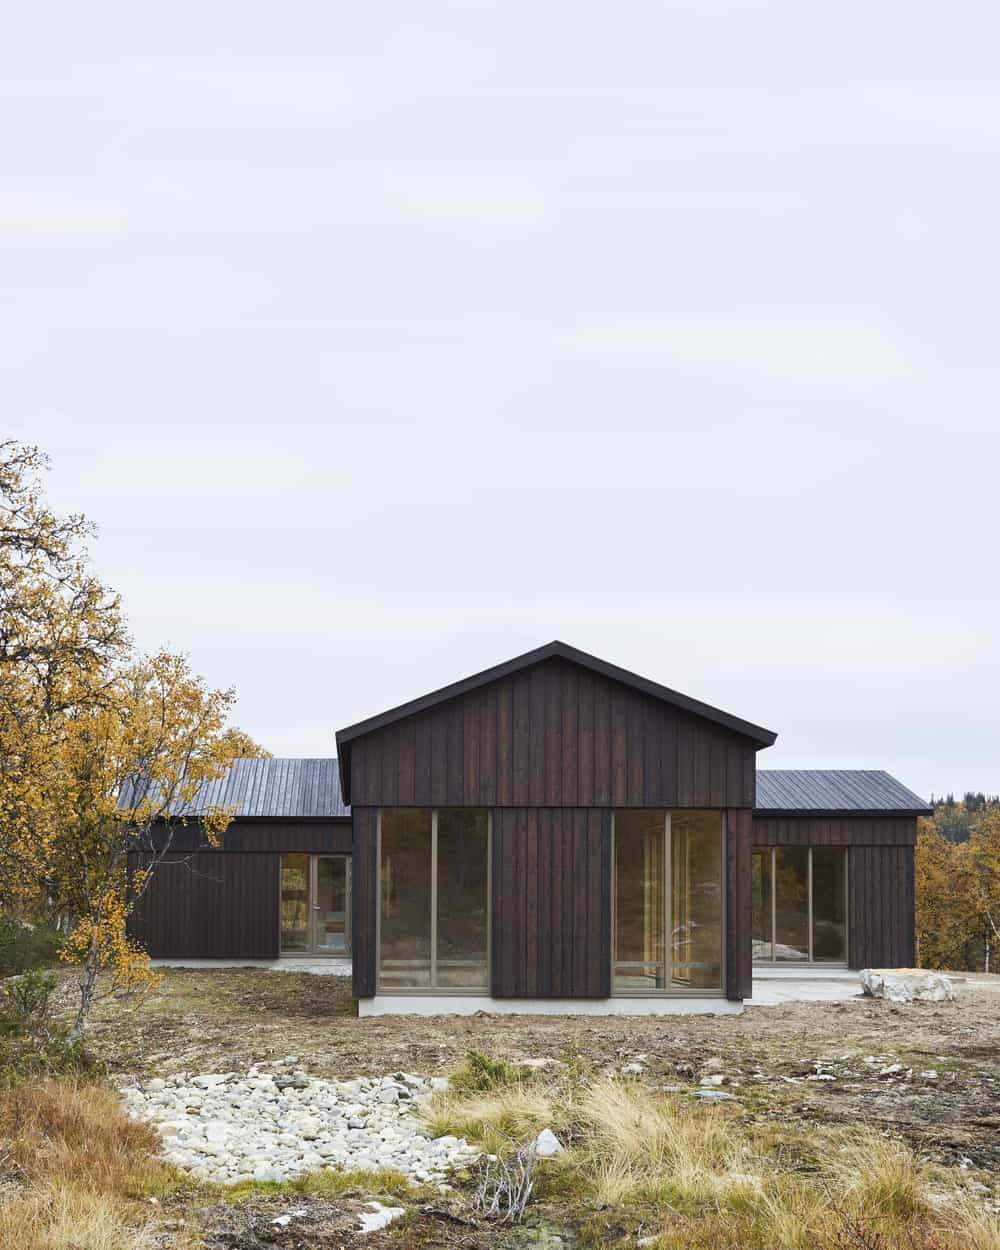 This is a look at the exterior of the house that has dark wooden tones to its exterior walls paired with glass walls.